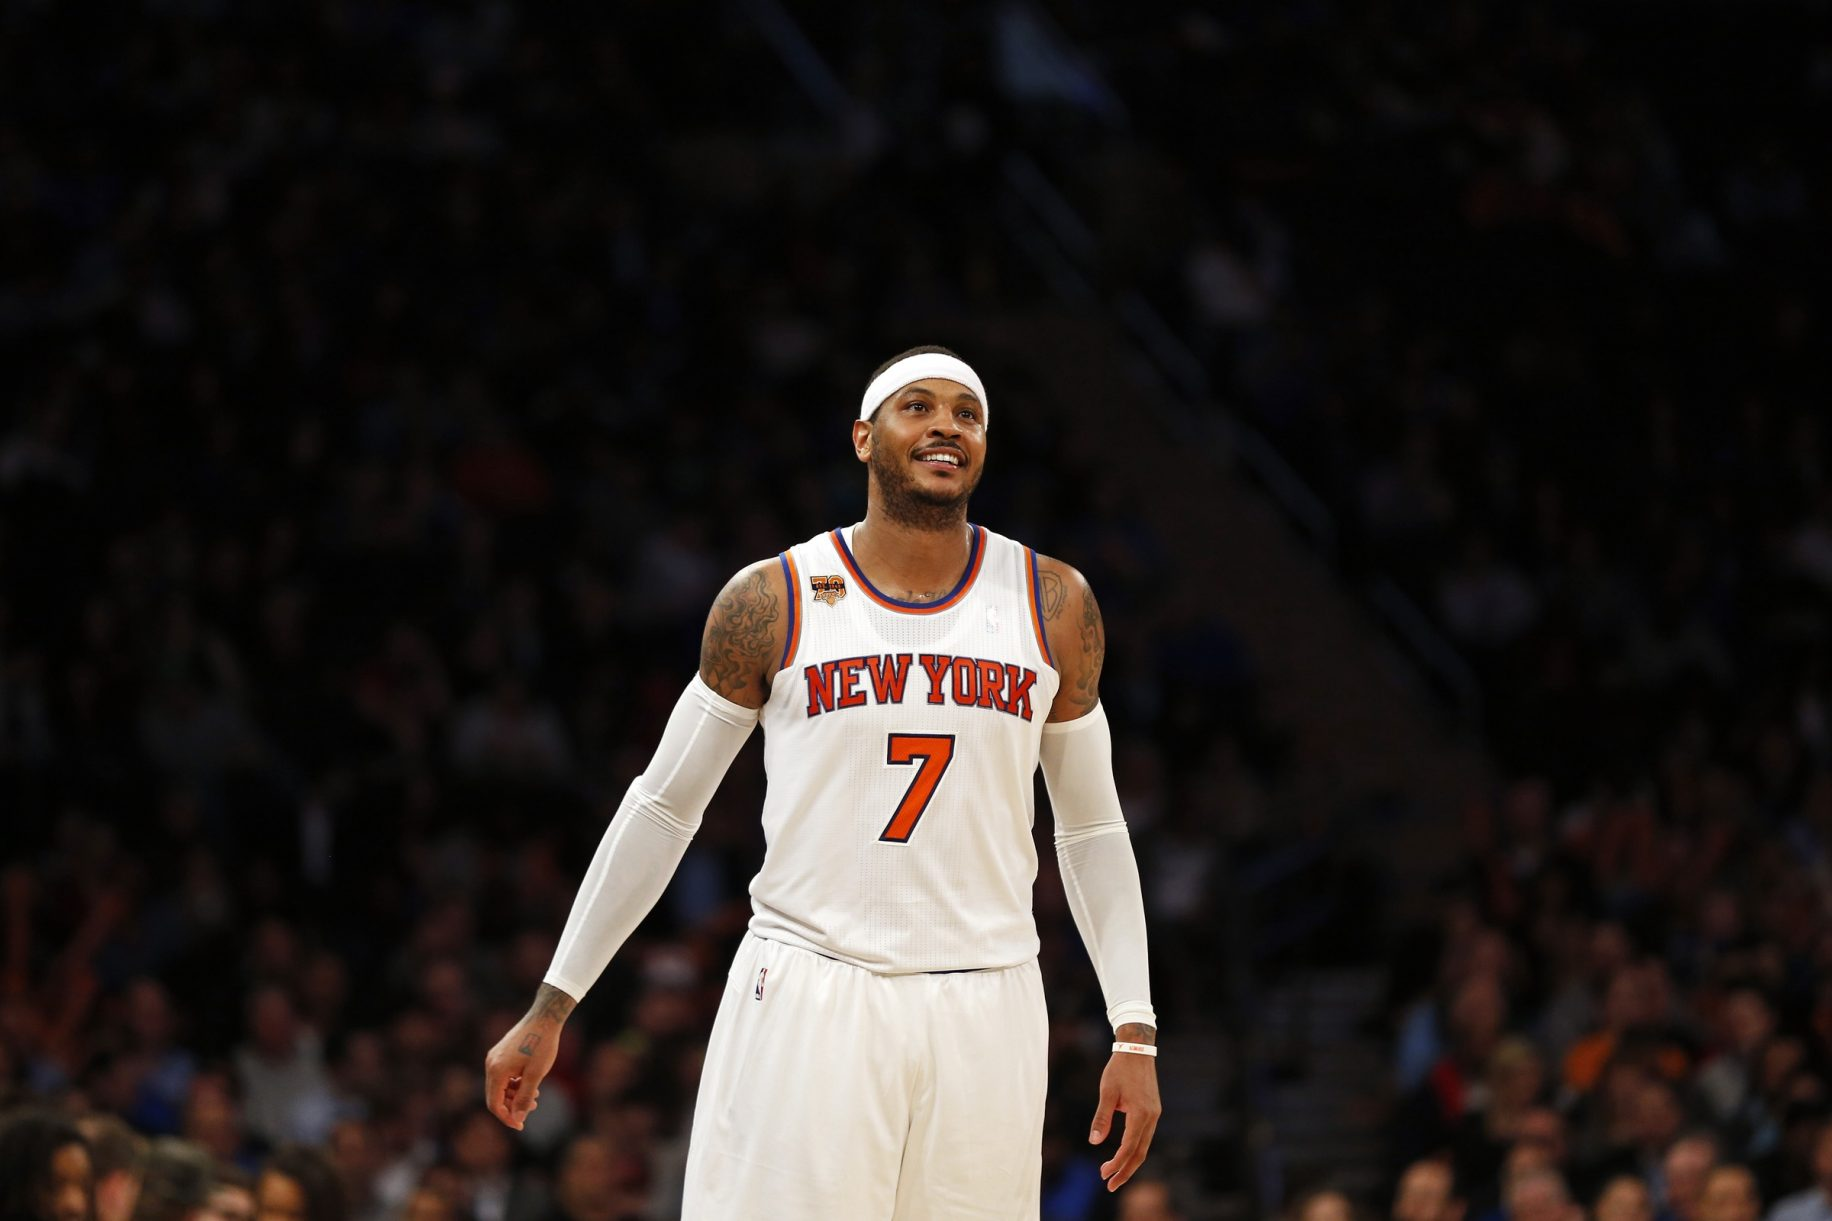 Knicks: Carmelo Anthony Involved In Heated Exchange With Jeff Hornacek, Kurt Rambis (Report) 2